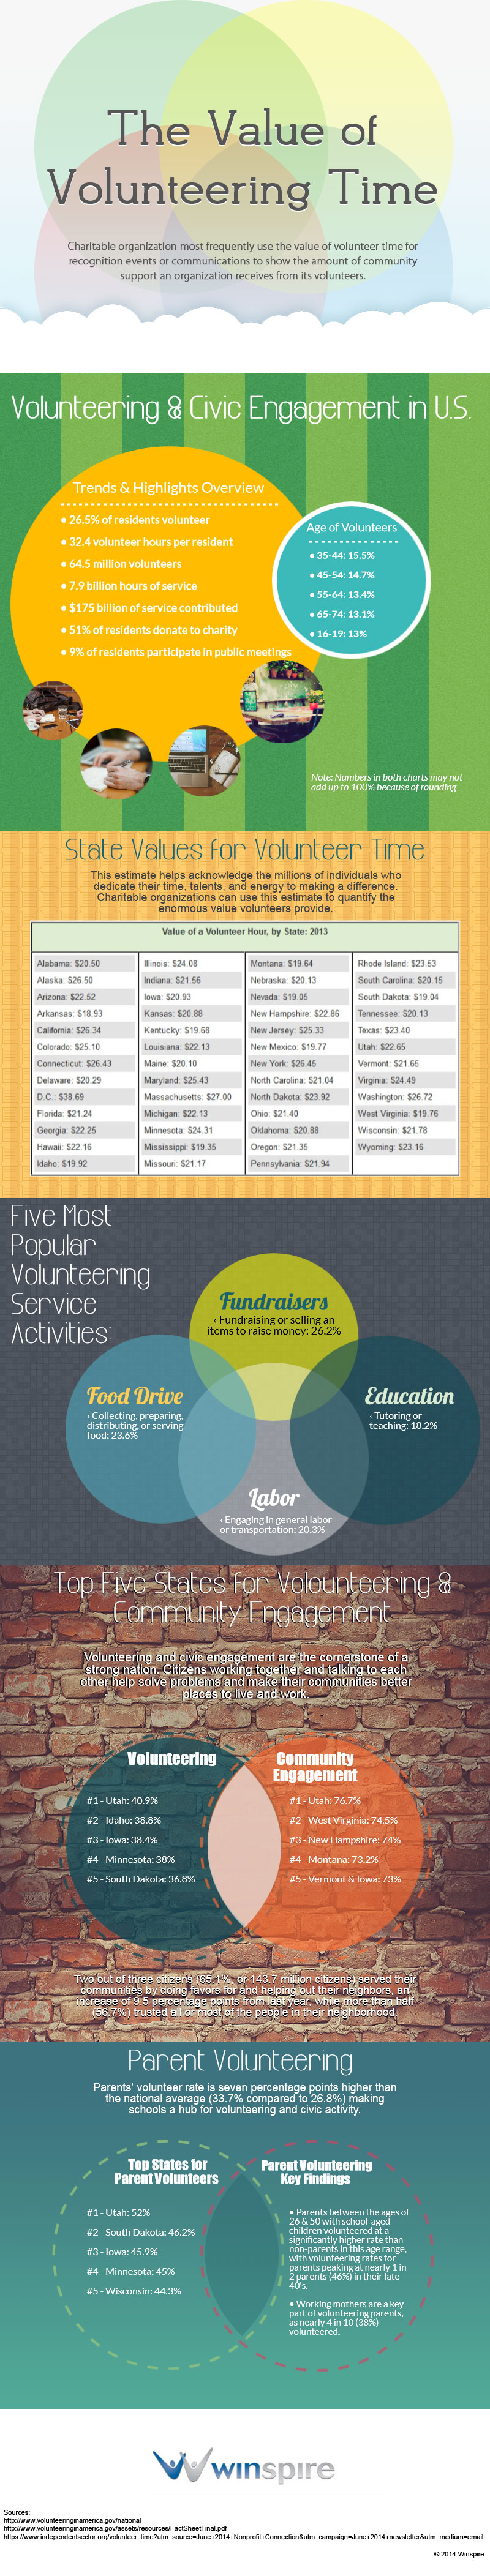 Winspire The Value of Volunteering Time Infographic